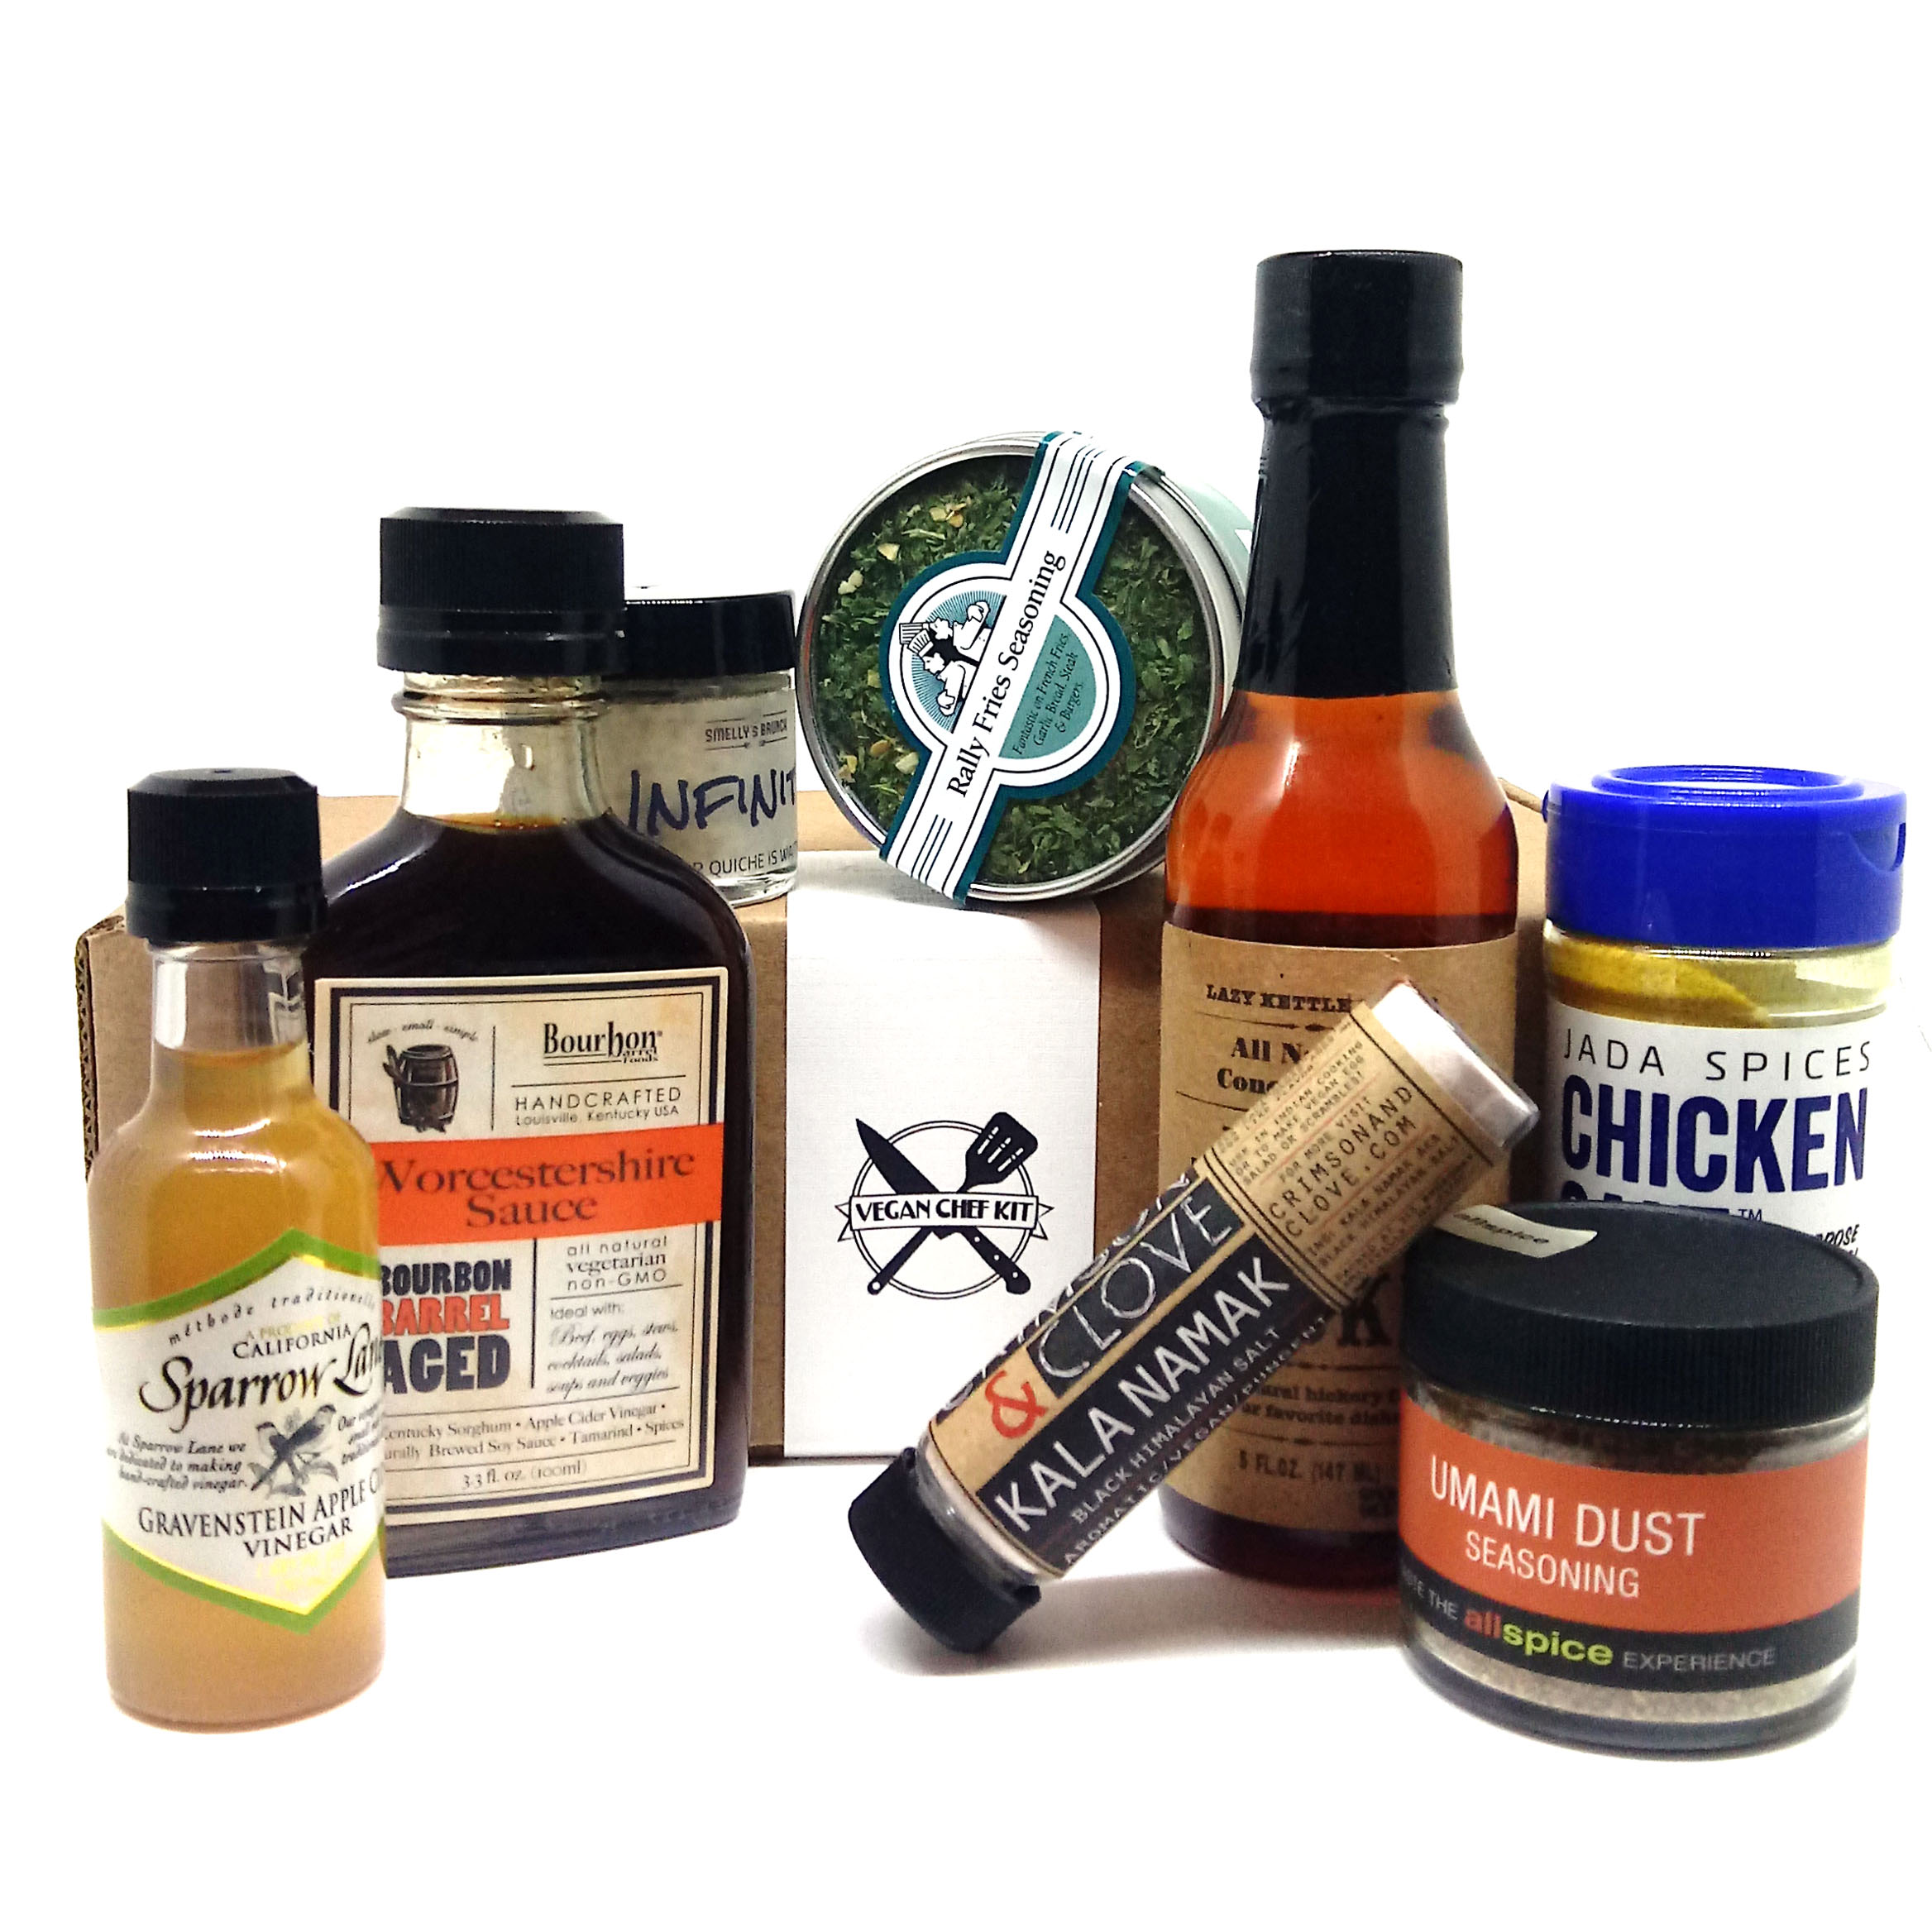 Vegan cooking ingredients in front of a gift box